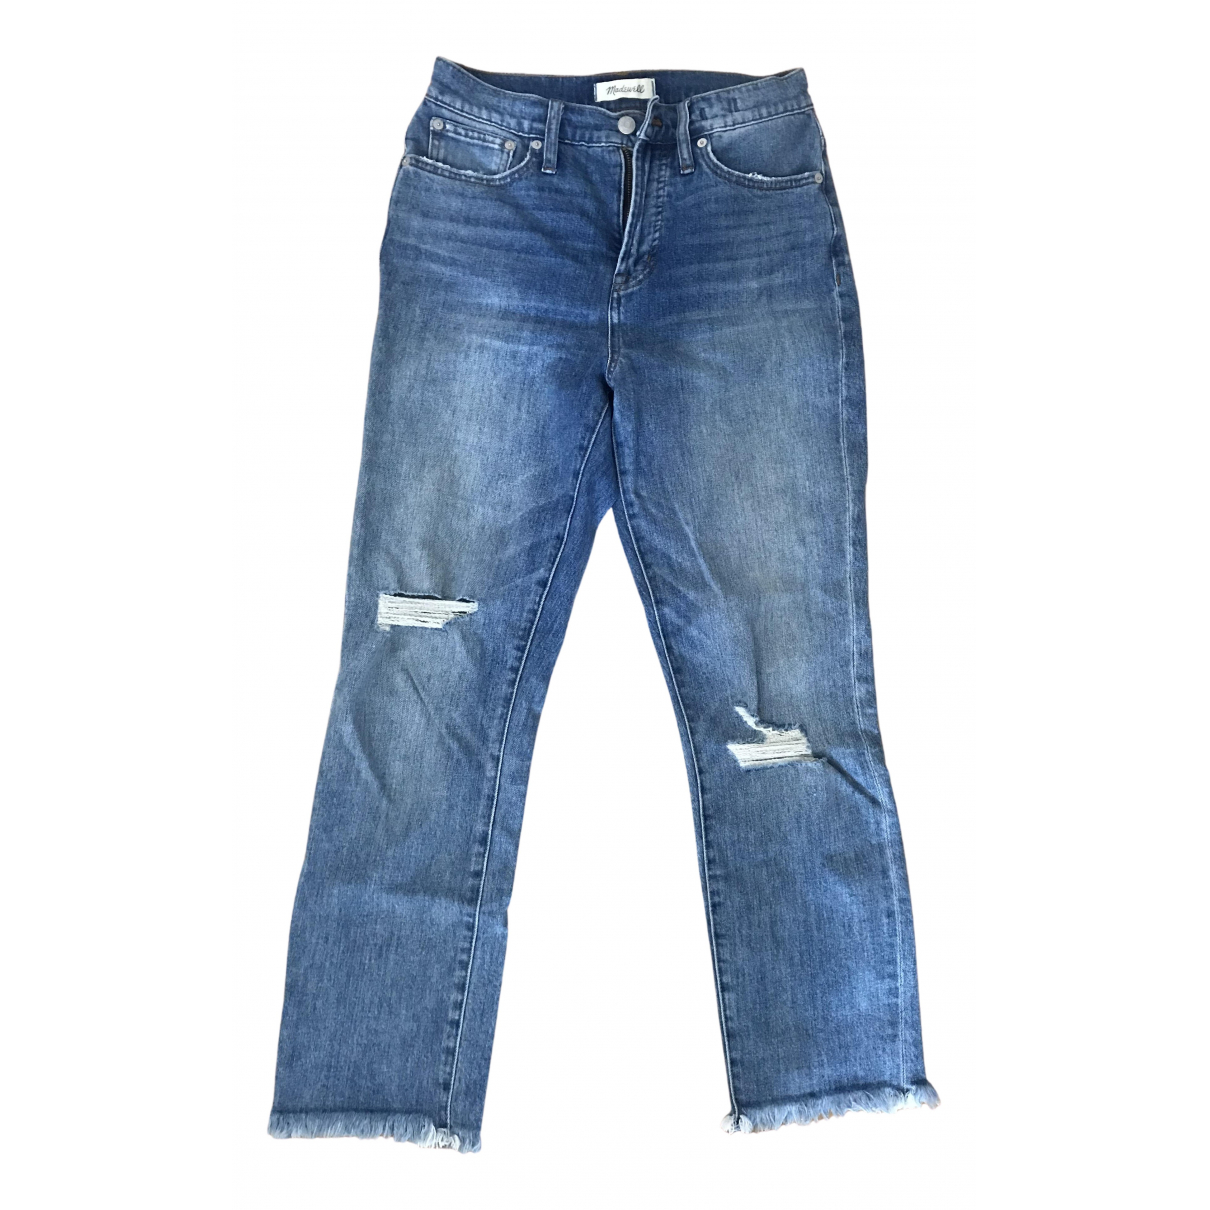 Madewell N Blue Cotton - elasthane Jeans for Women 26 US